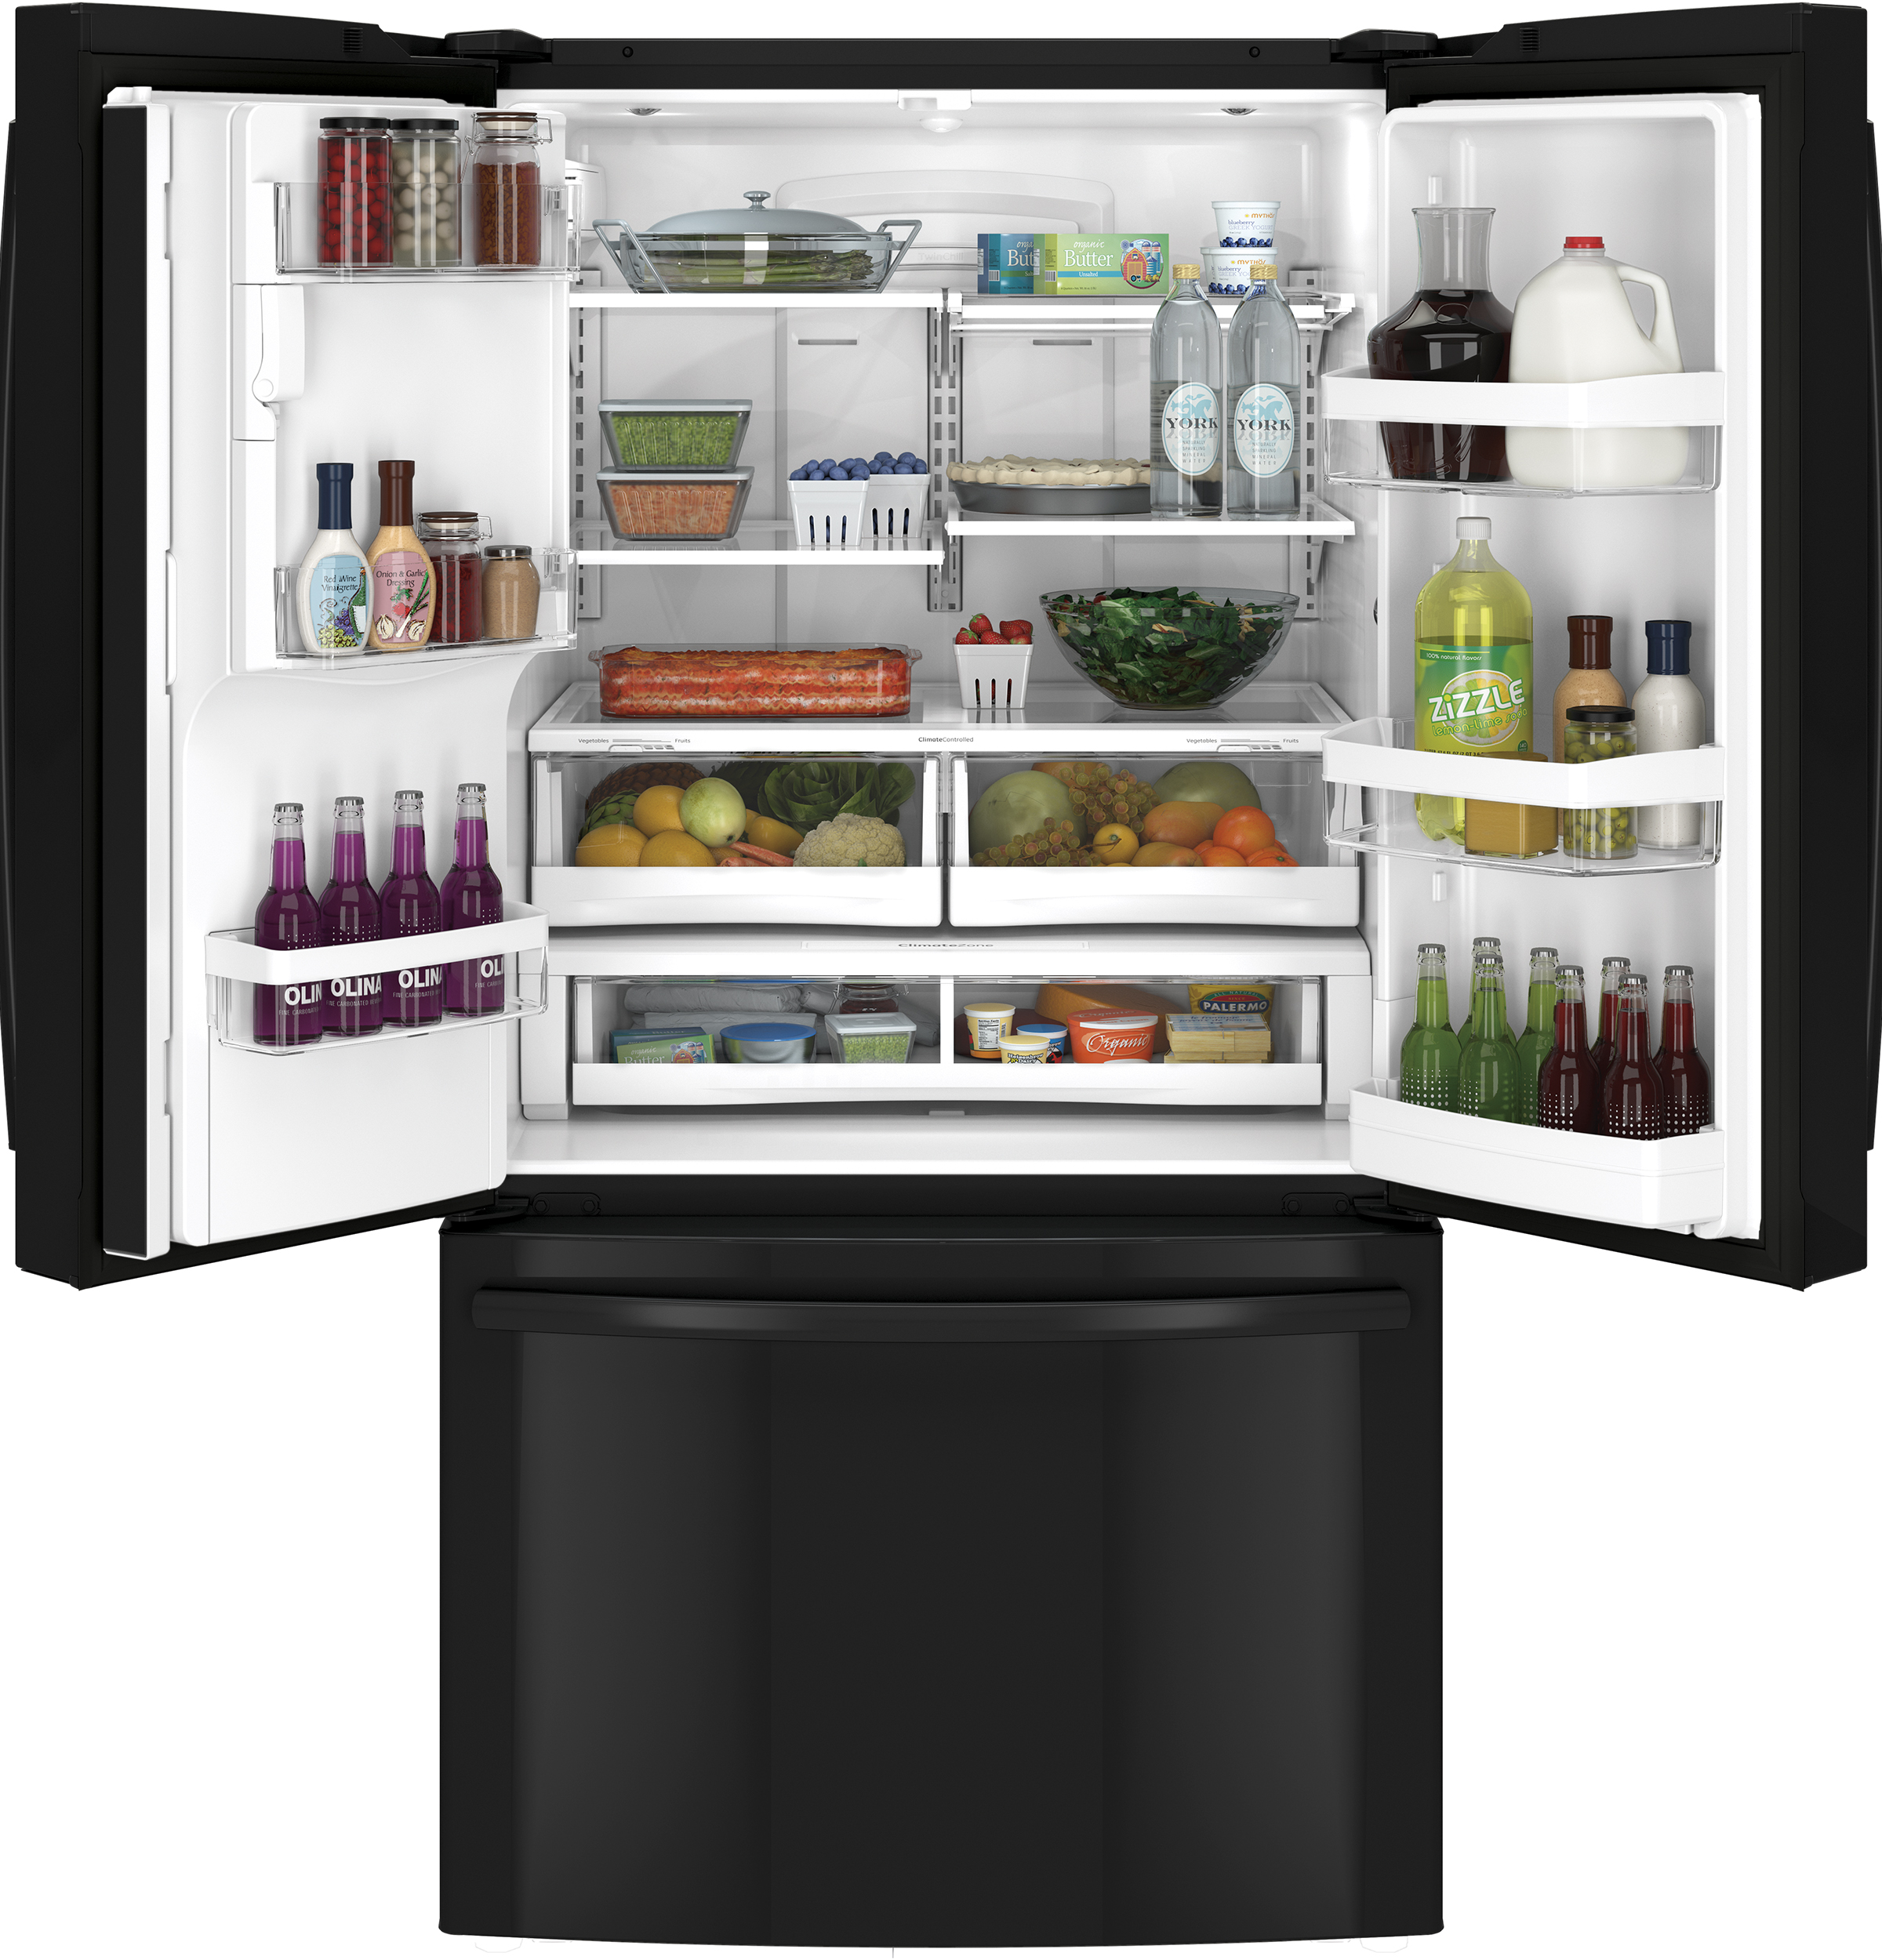 GE Appliances GFE28HGHBB 27.7 cu. ft. French-Door Ice and Water Refrigerator - Black